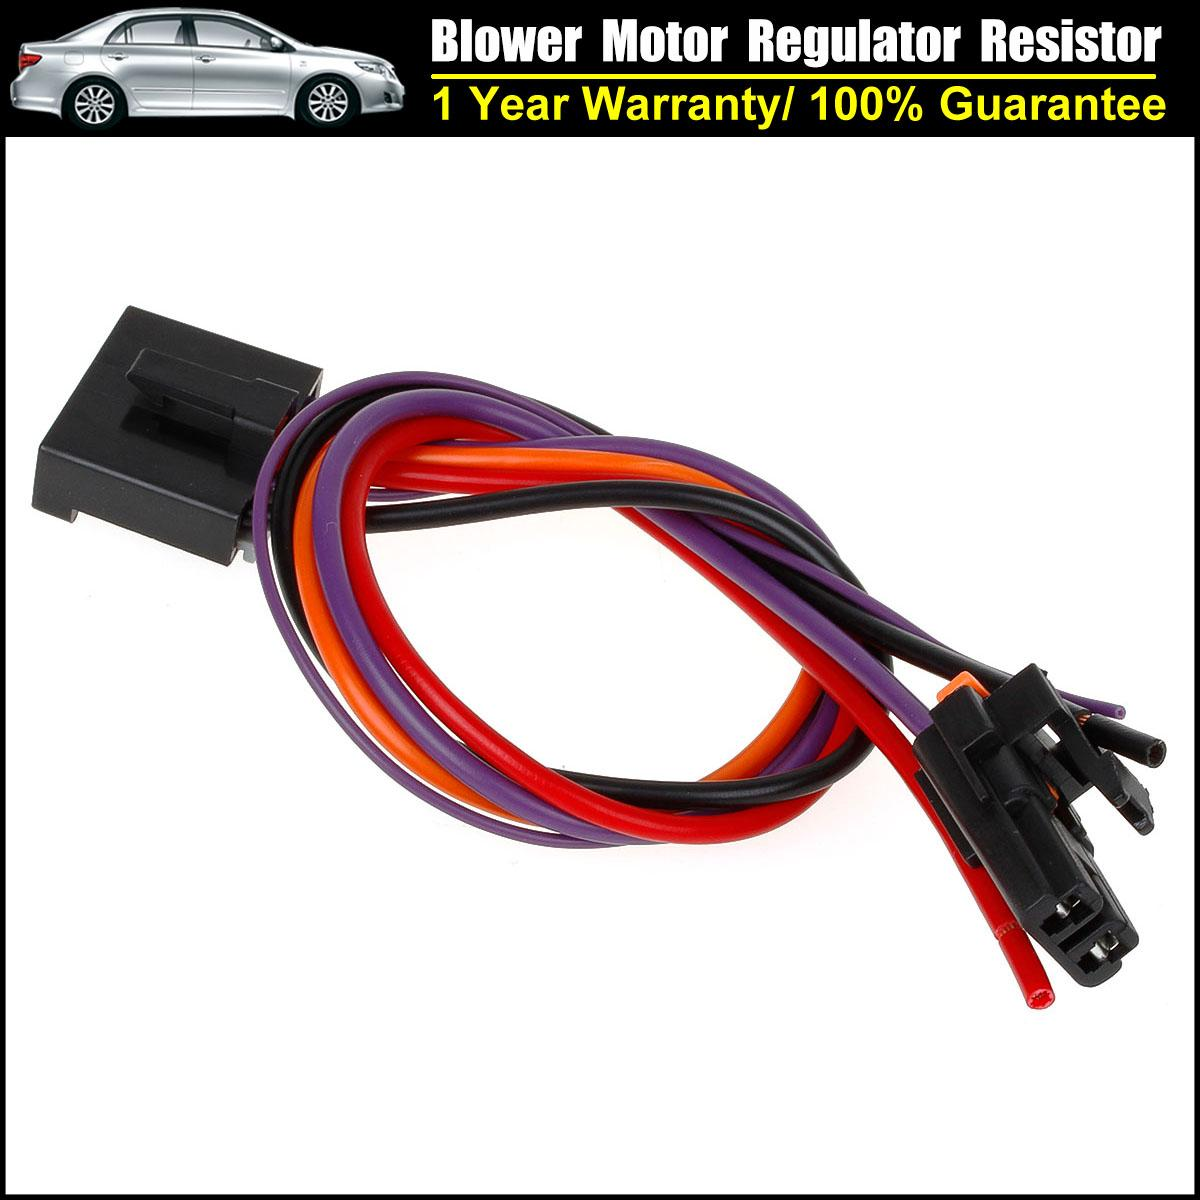 Blower motor resistor harness 5 2 wire pigtail connector for 2007 chevy silverado blower motor